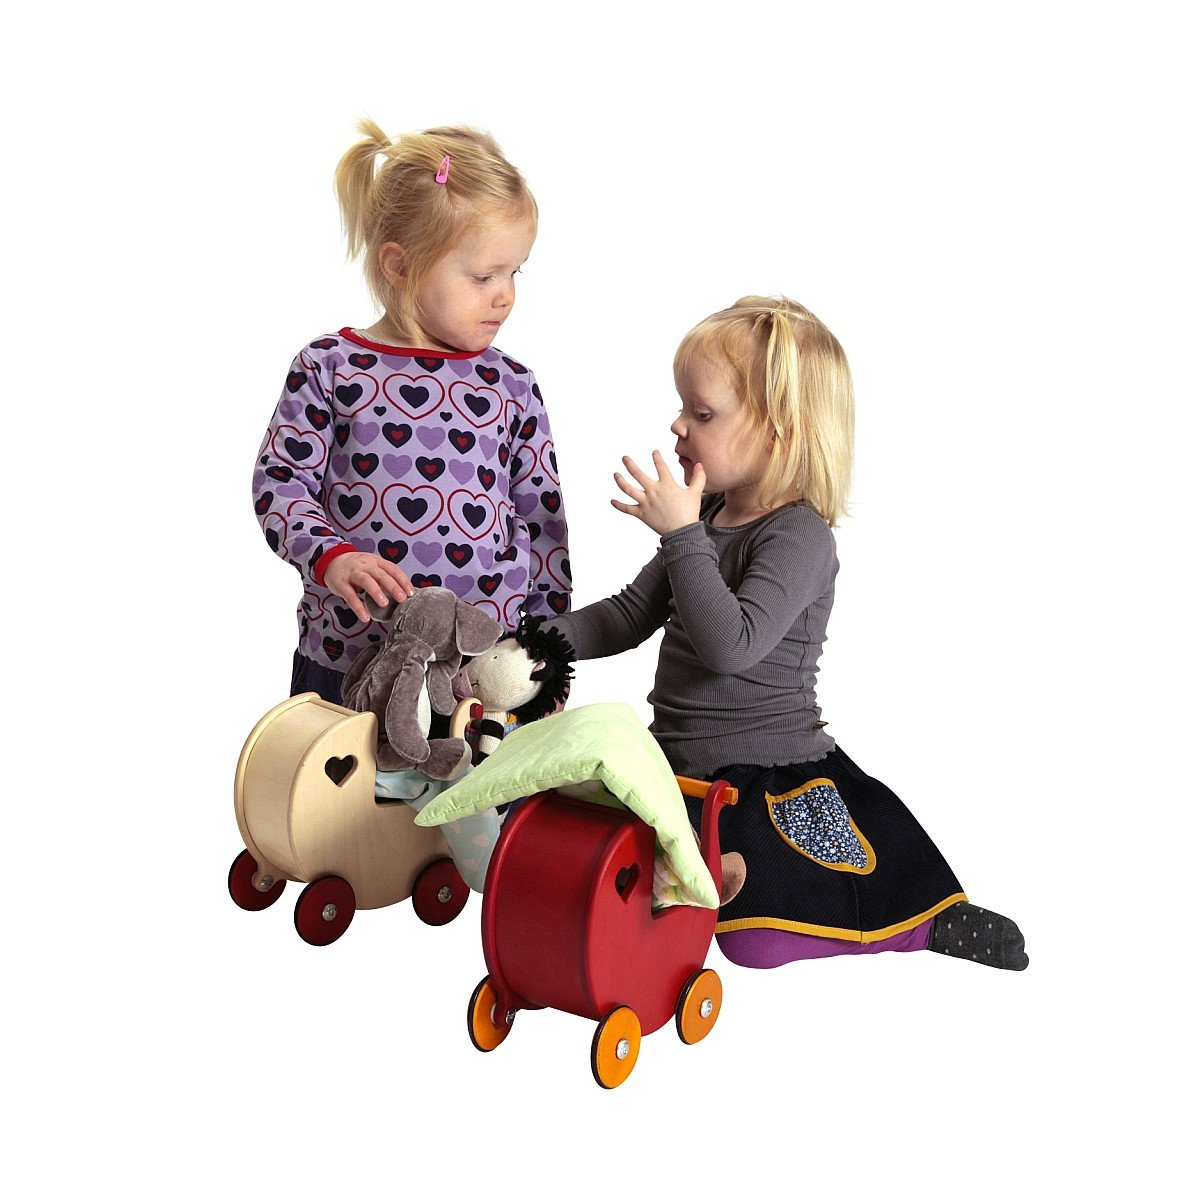 Moover Mini Dolls Pram Moover Toys Dolls, Playsets & Toy Figures at Little Earth Nest Eco Shop